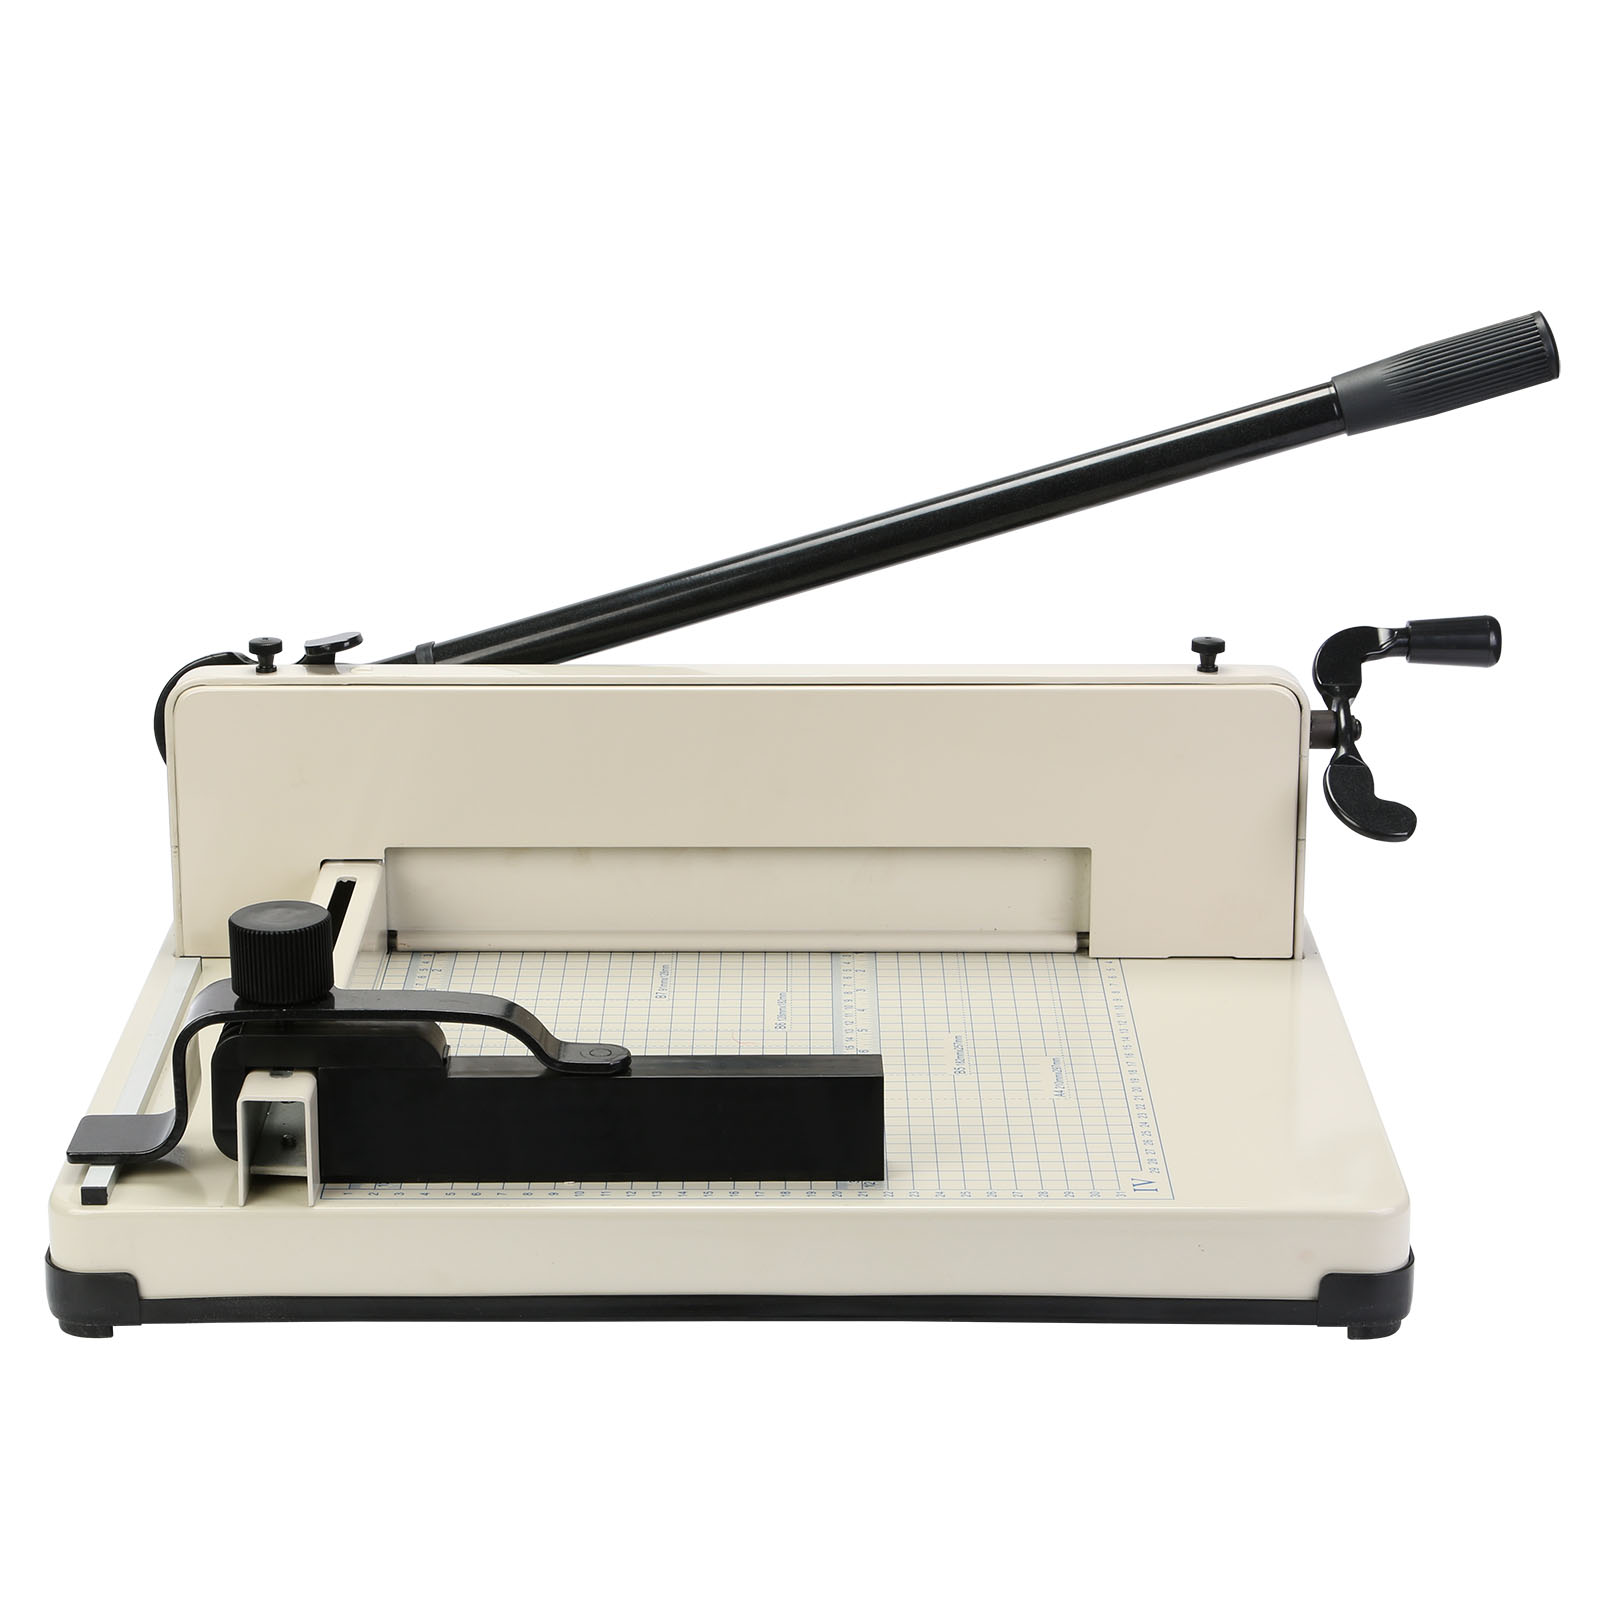 A4-PAPER-CUTTER-12-034-LONG-LIFETIME-EXPOSURE-OUTSIDE-IMBED-INSIDE-NEWEST-DESIGN